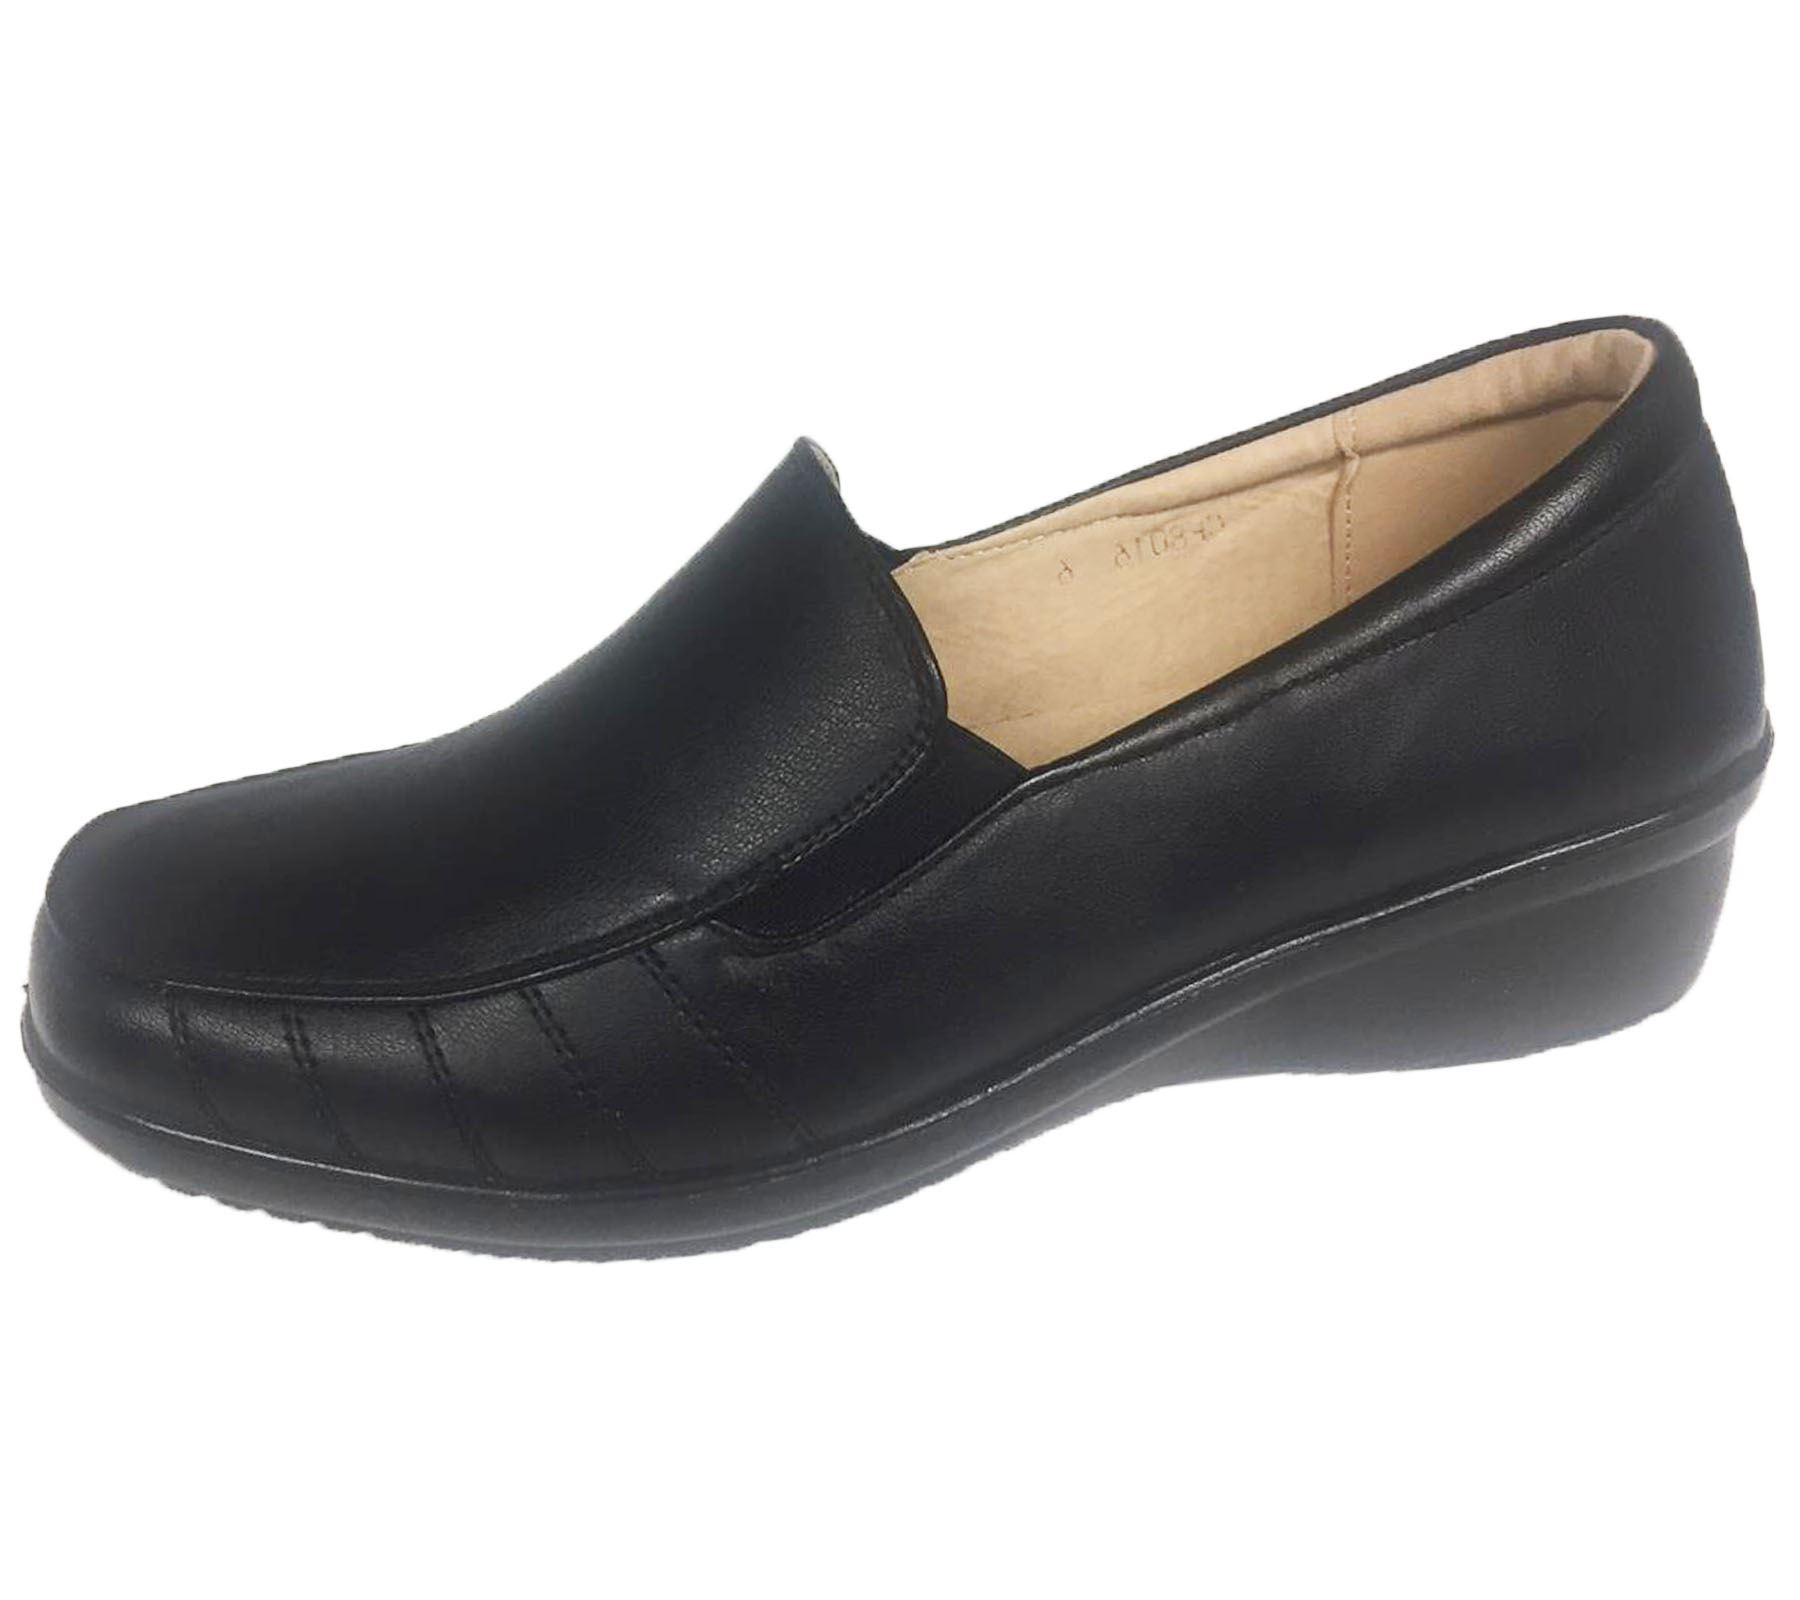 Ladies-Loafer-Moccasin-Womens-Casual-Comfort-Walk-Pumps-Slip-On-Shoes thumbnail 6